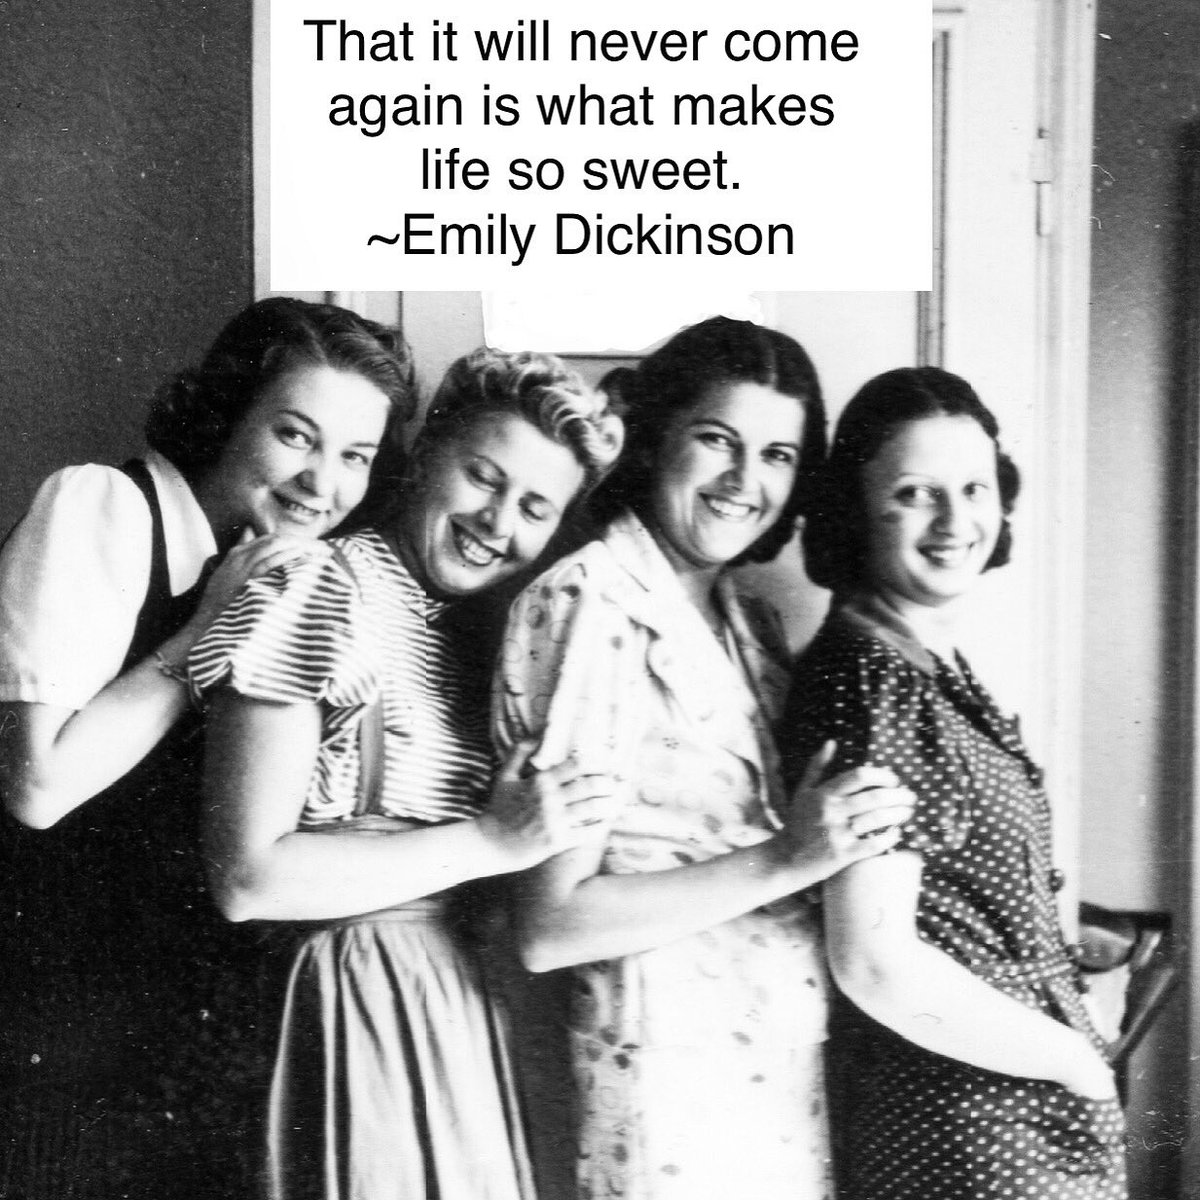 """""""That it will never come  again is what makes  #life so sweet."""" #EmilyDickinson  #quotestoliveby #quotes #livingmybestlife #live #love #friends #family #enjoylife #enjoythemoment #togetherness #goodlife #goodliving #enjoythelittlethingspic.twitter.com/QUVmGMxSSx"""